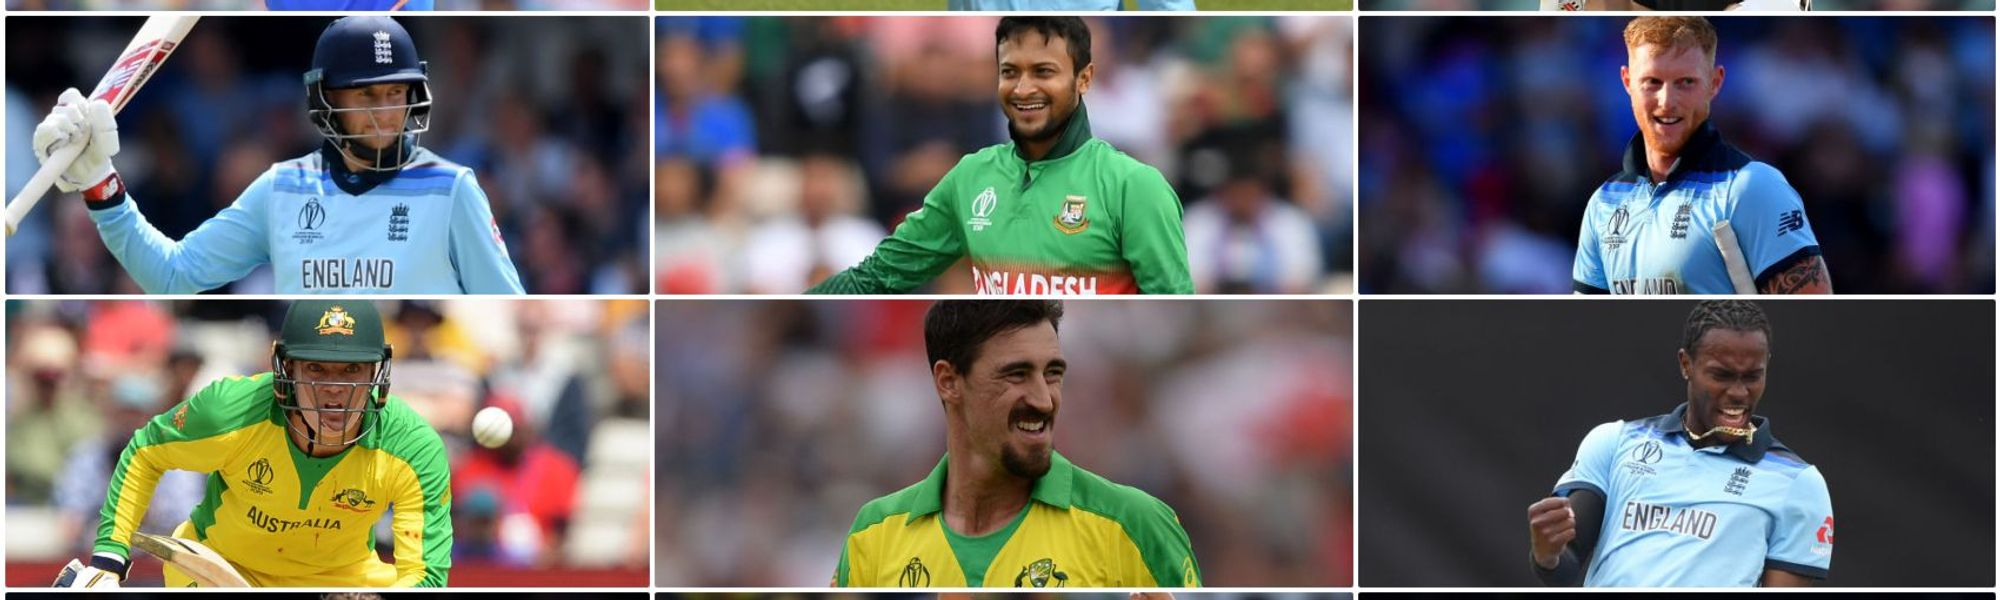 CWC19: Team of the Tournament